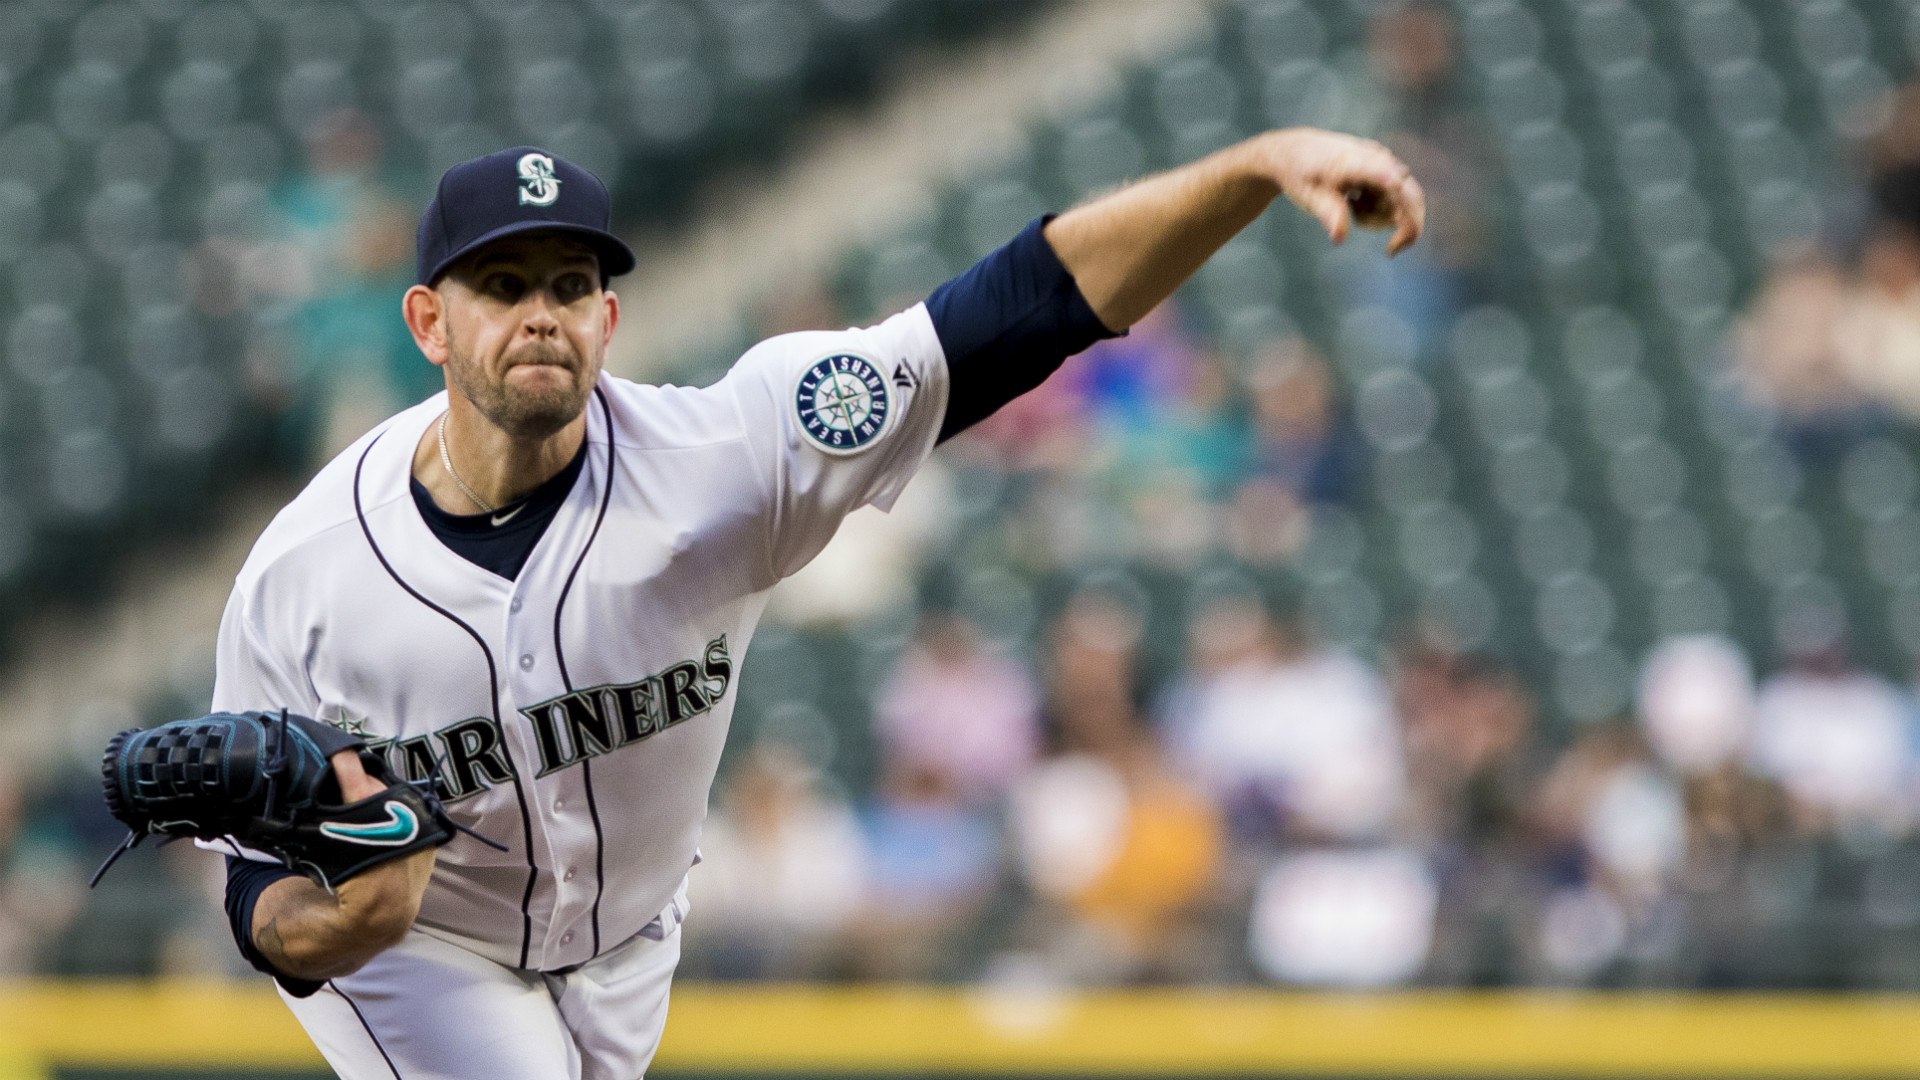 Canada's James Paxton records 16 strikeouts for Mariners, sets MLB record